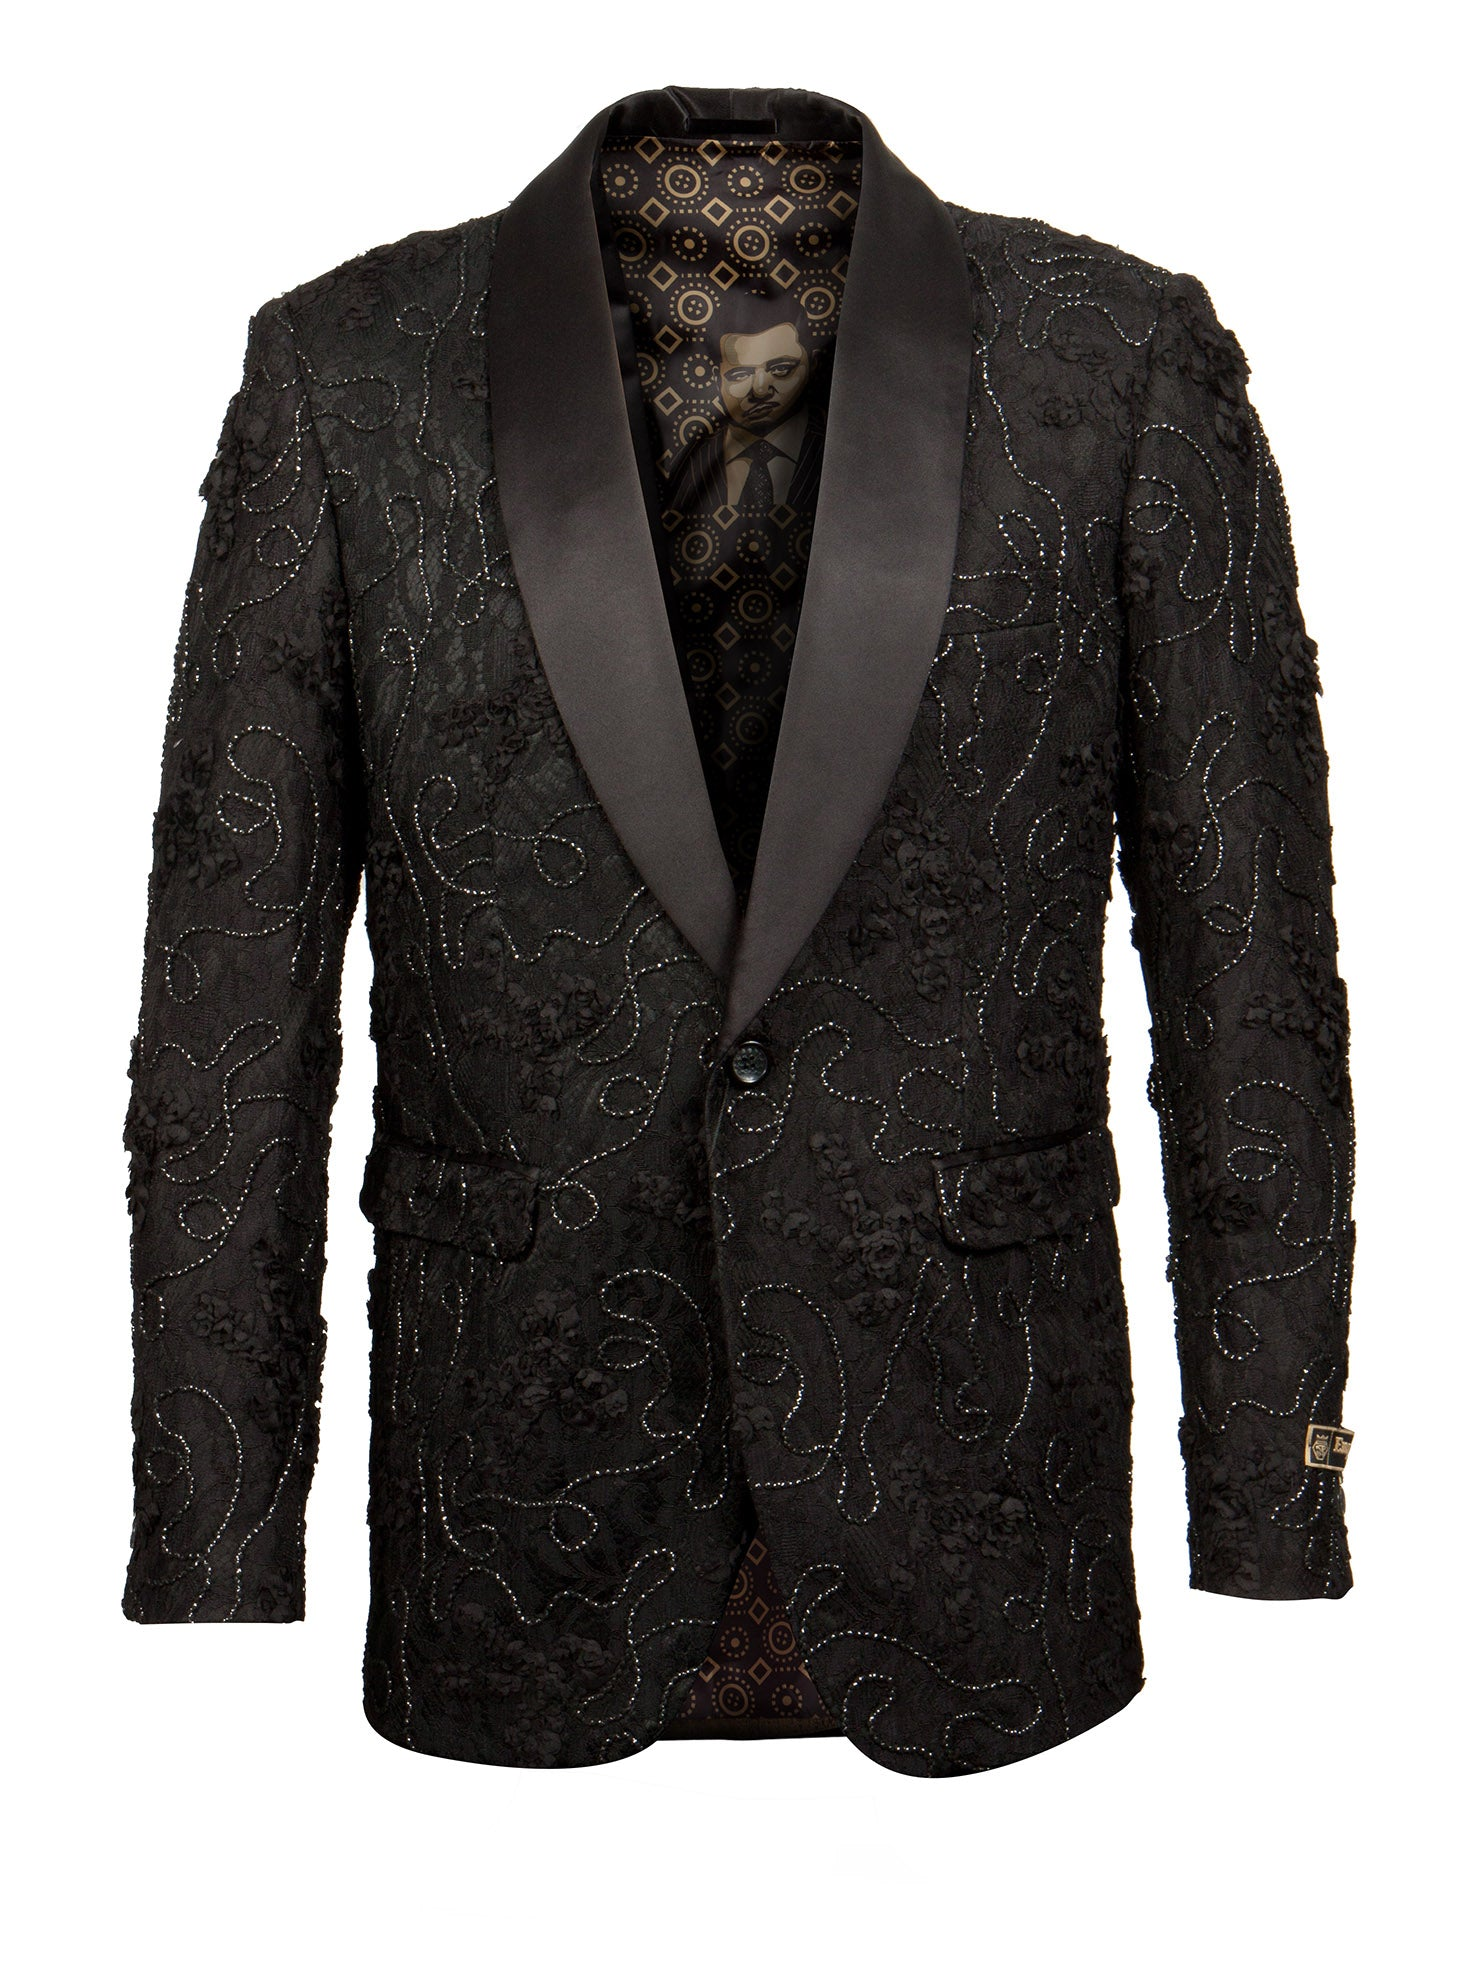 Black Empire Show Blazers Formal Dinner Suit Jackets For Men ME257H-01